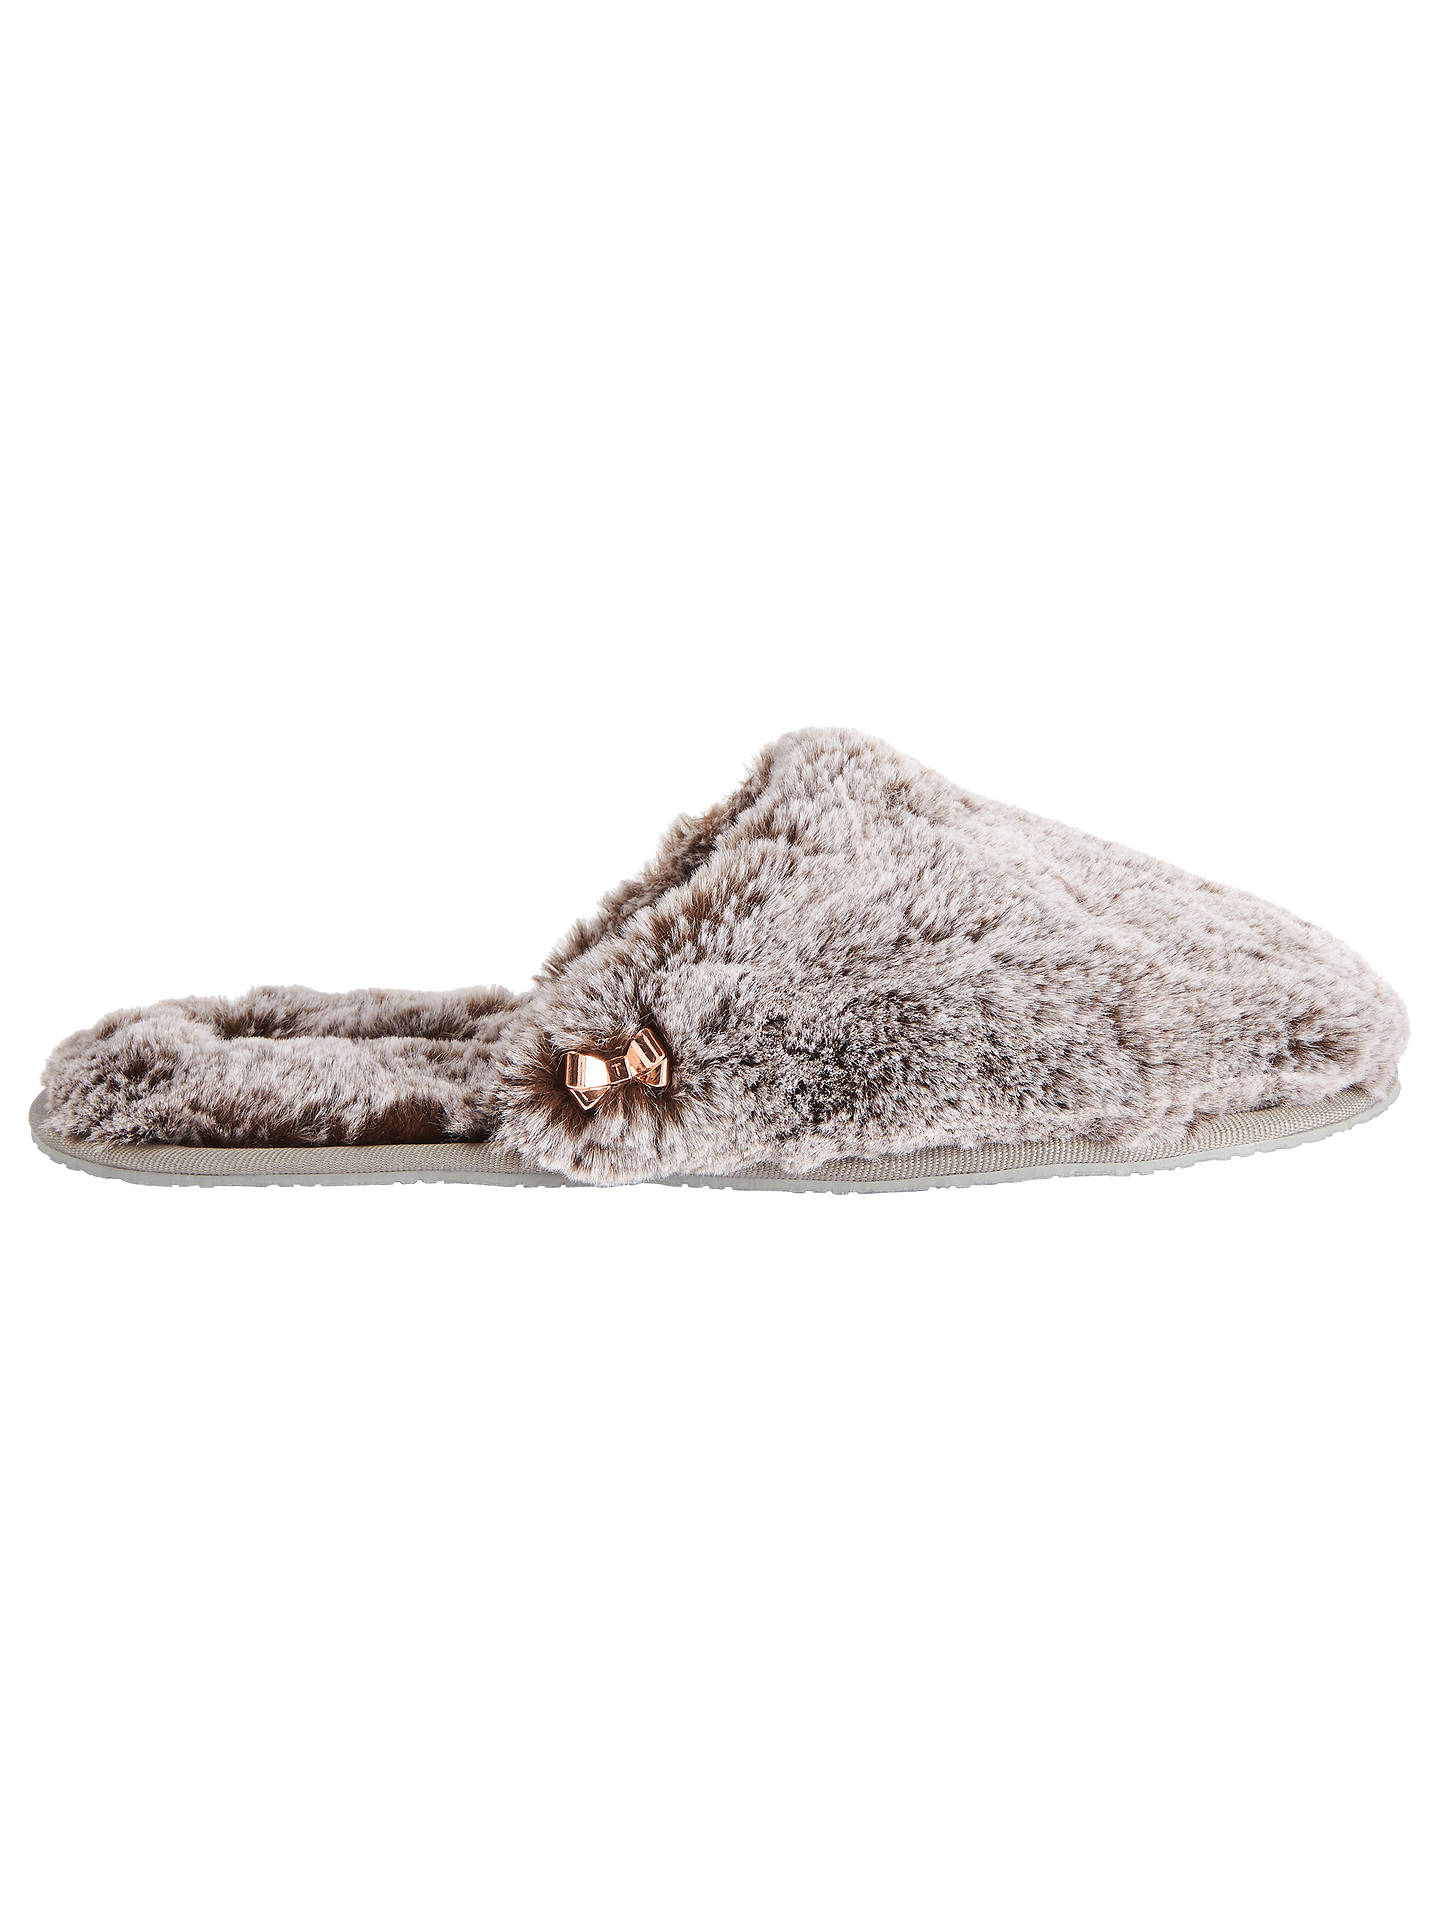 641ed598f32f14 Ted Baker Phulfy Mule Slippers at John Lewis   Partners